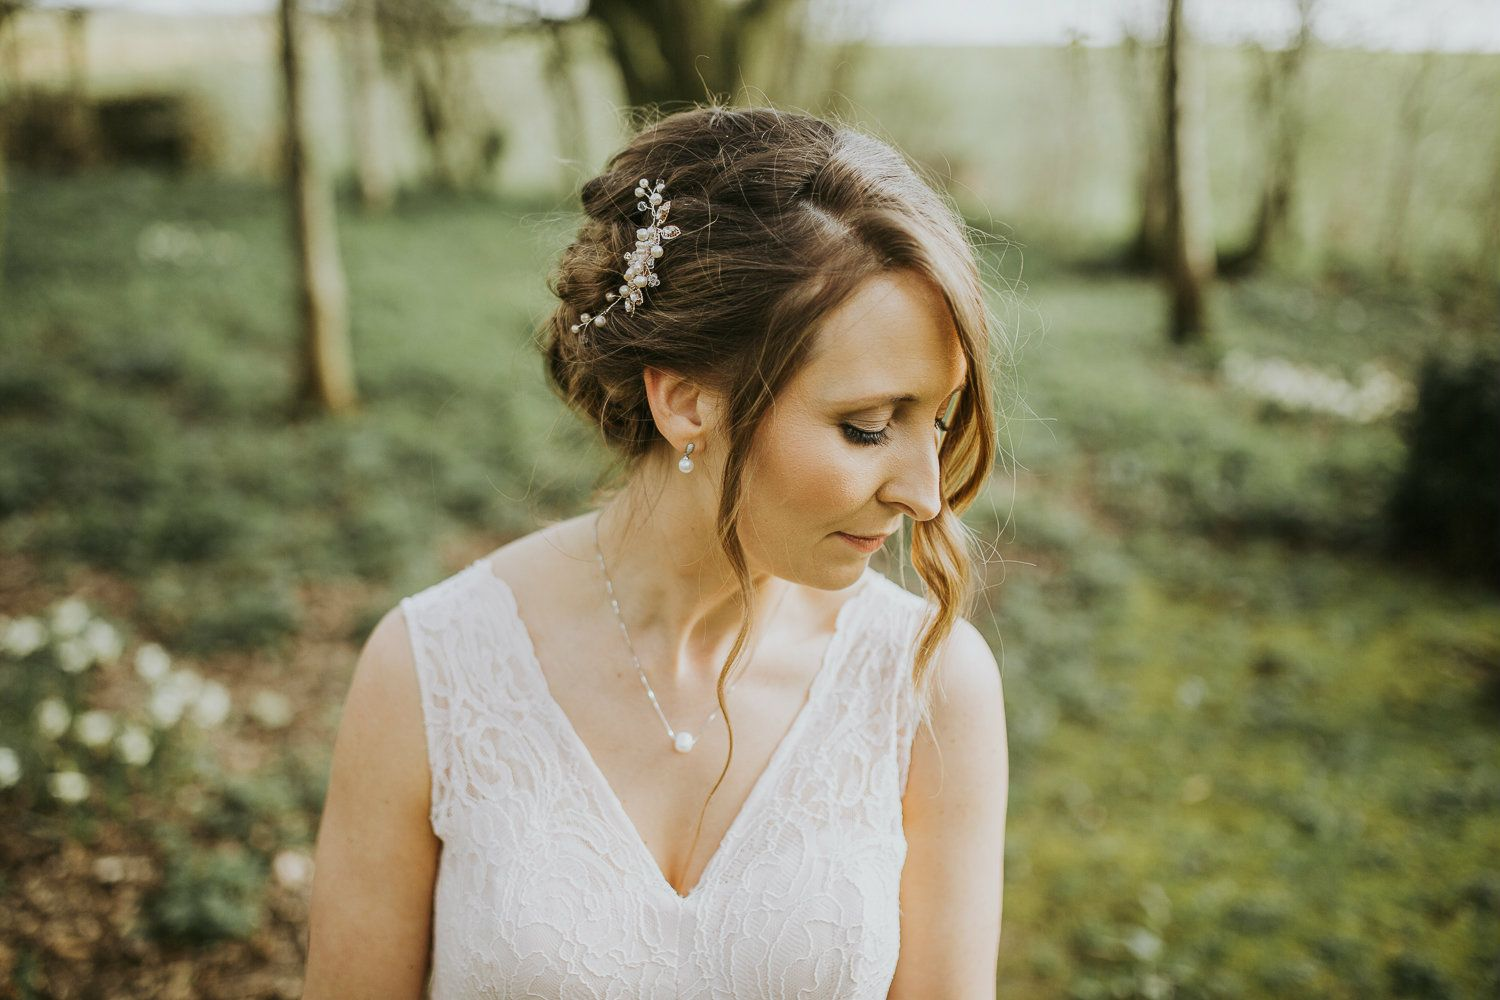 Cotswolds-gloucestershire bridal hair stylist-KTRN (7)